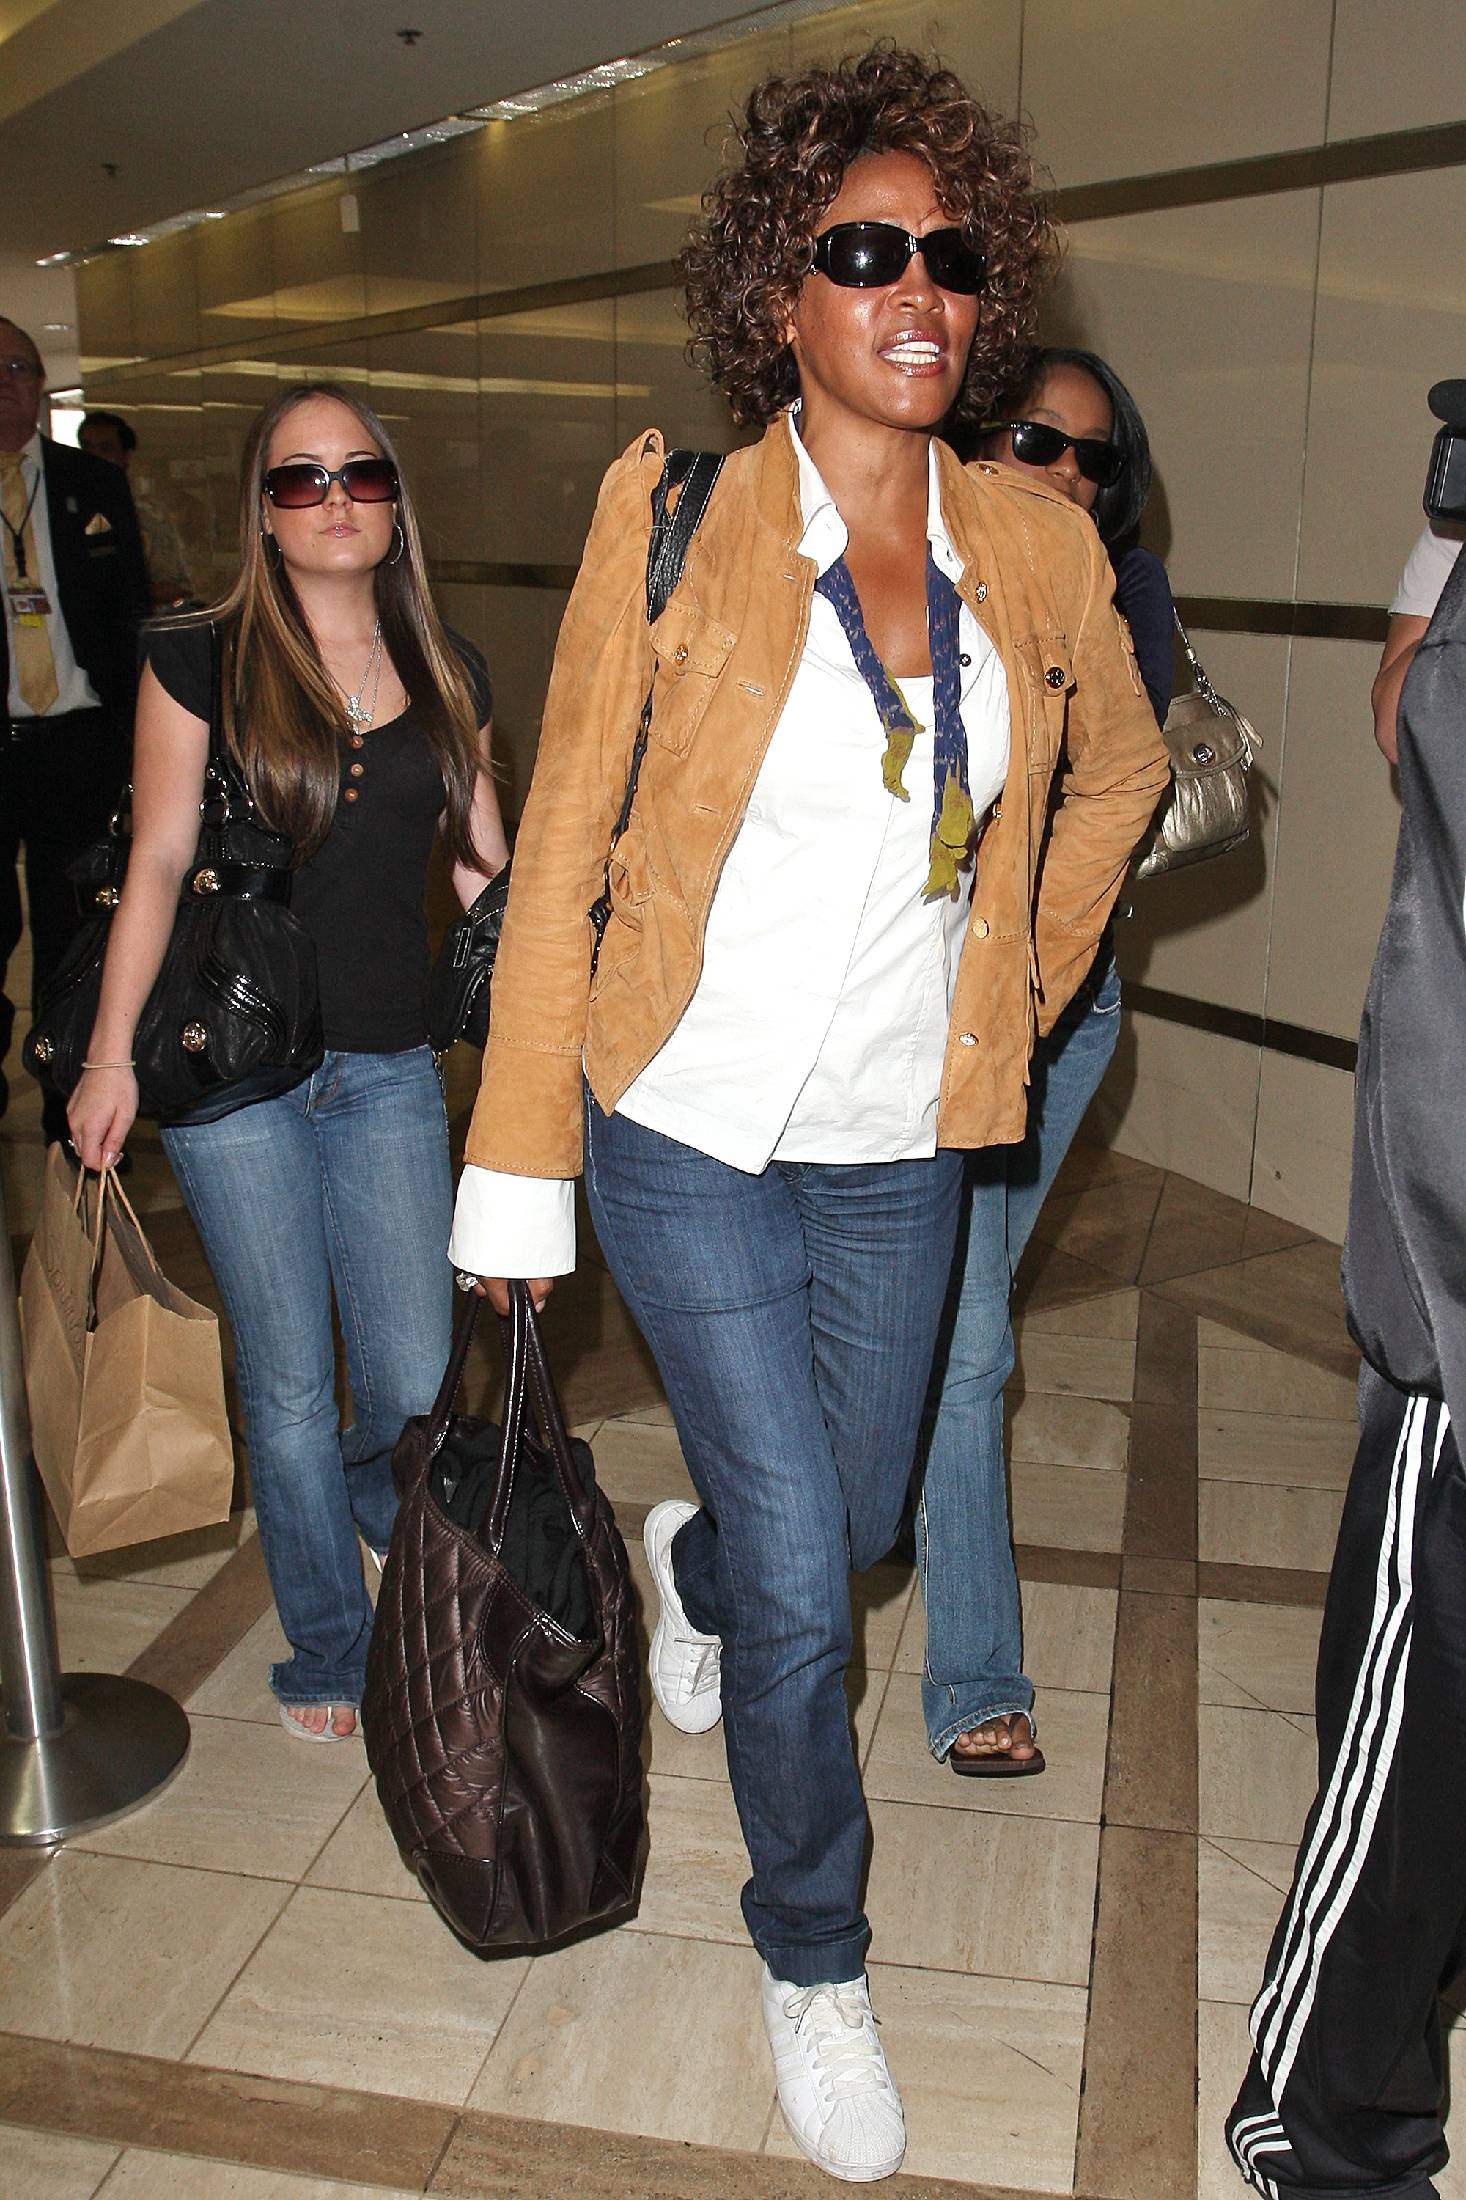 22937_whitney_houston_arriving_at_lax_tikipeter_celebritycity_013_122_580lo.jpg